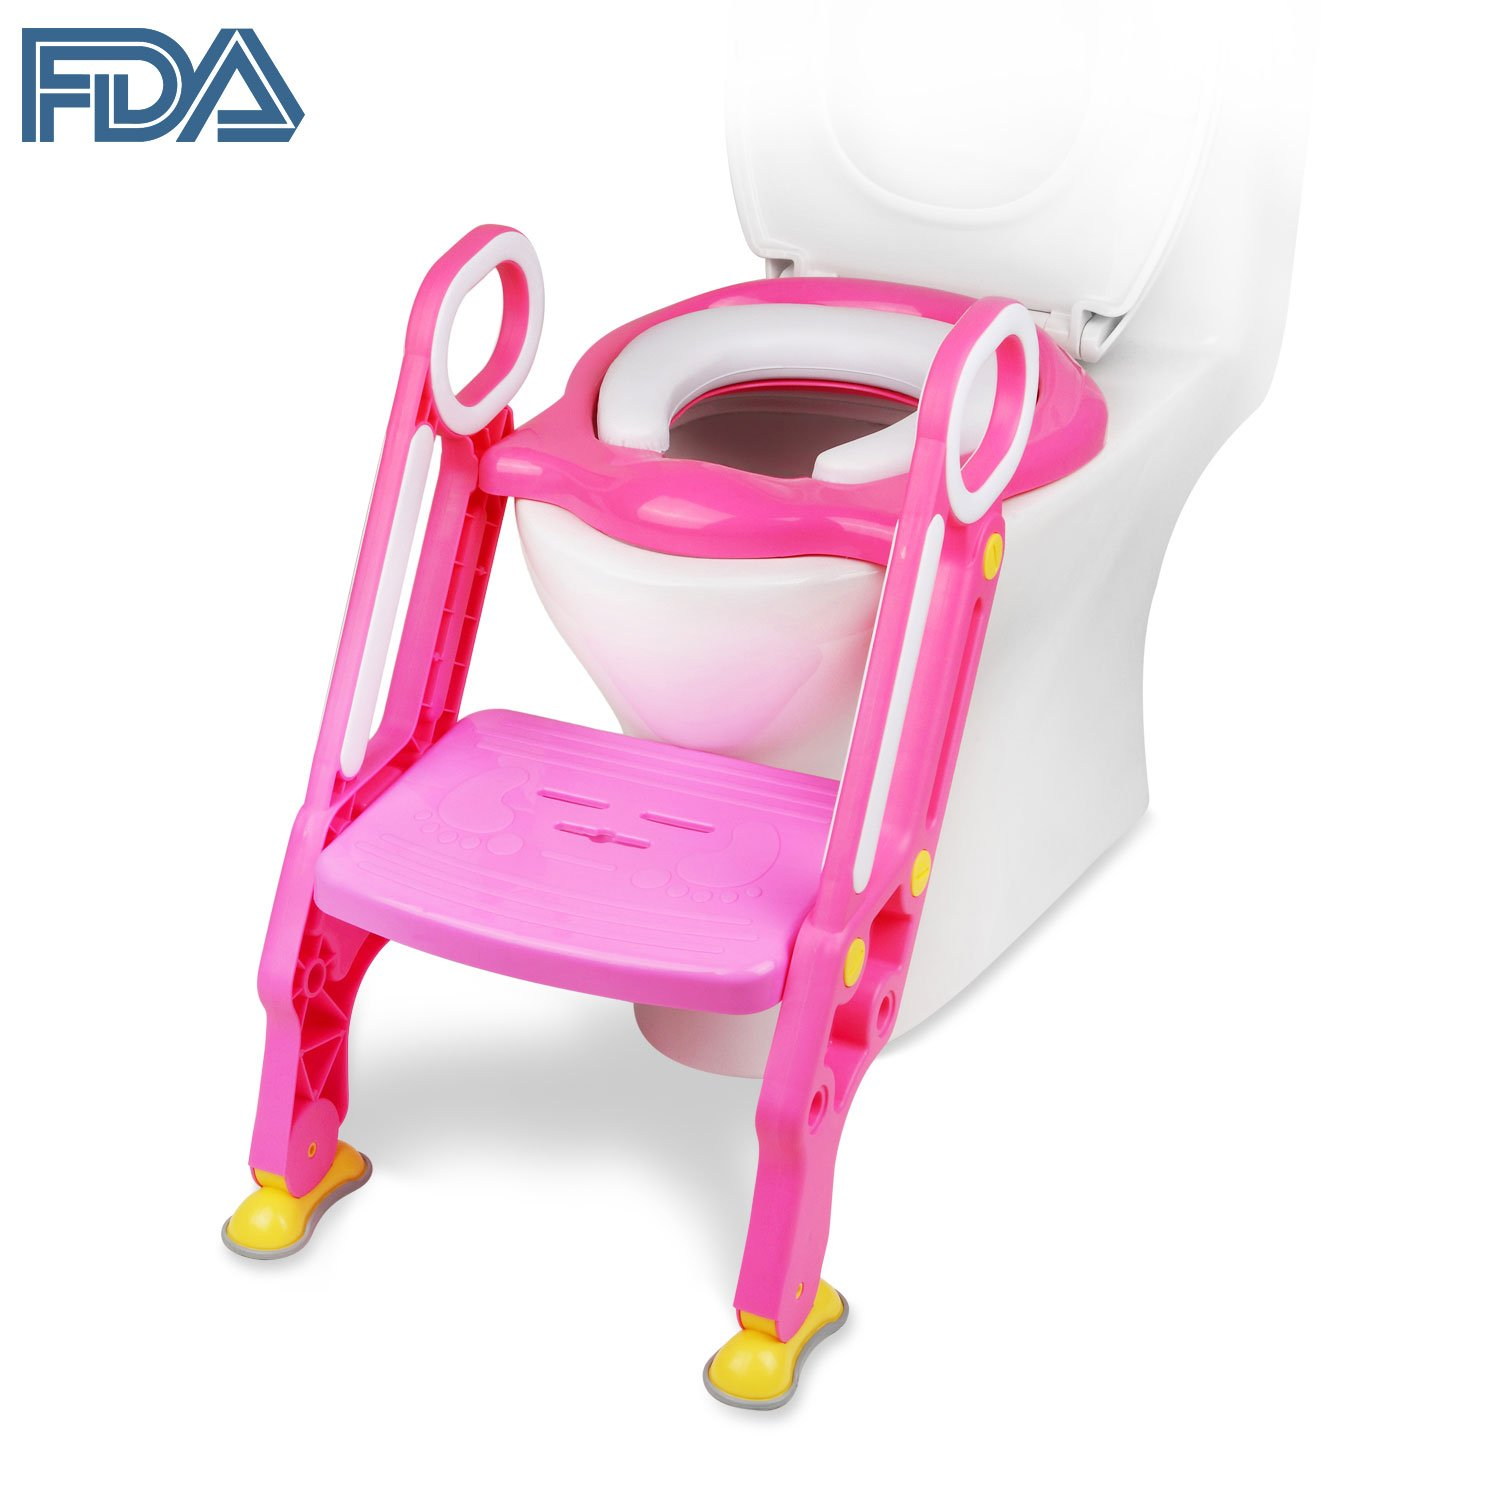 [FDA Certified] Ostrich Toilet Step Trainer Ladder for Kid and Baby, Children's Toilet Seat Chair, Toddlers Toilet Training Step Stool for Girl and Boy, Green Coreykin